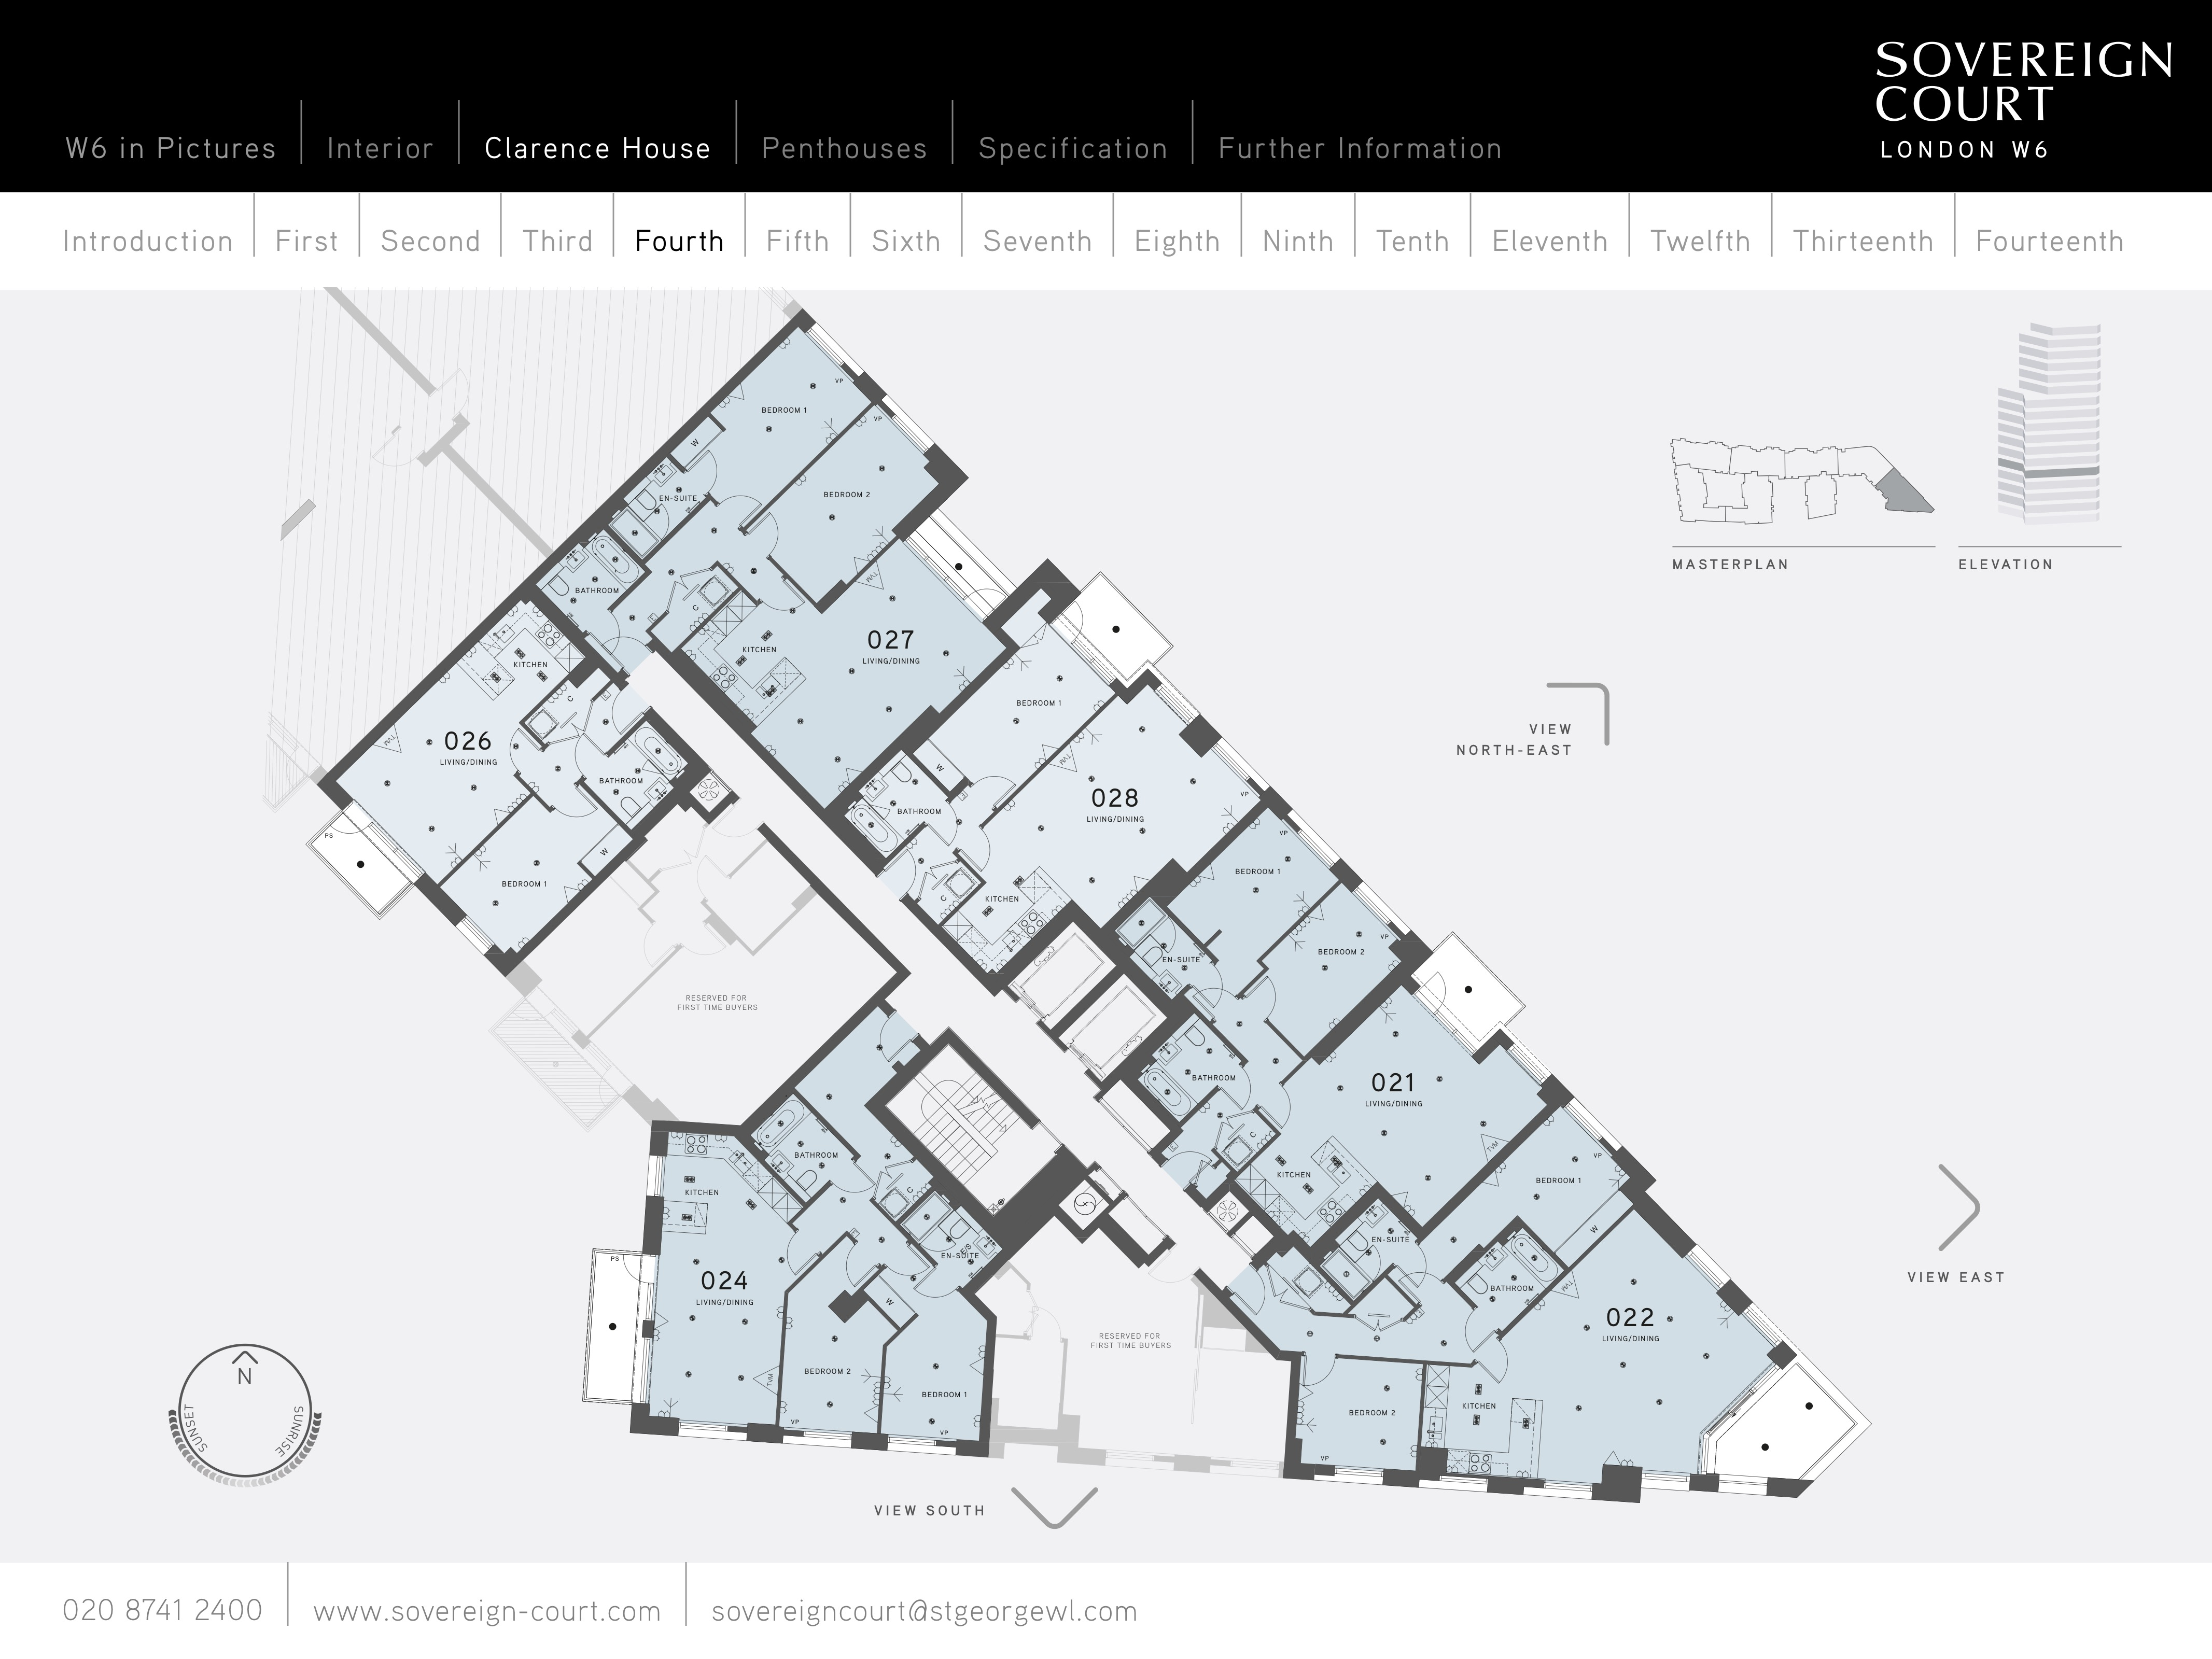 Sovereign court clarence house floor plans hammersmith for 125 court street floor plans